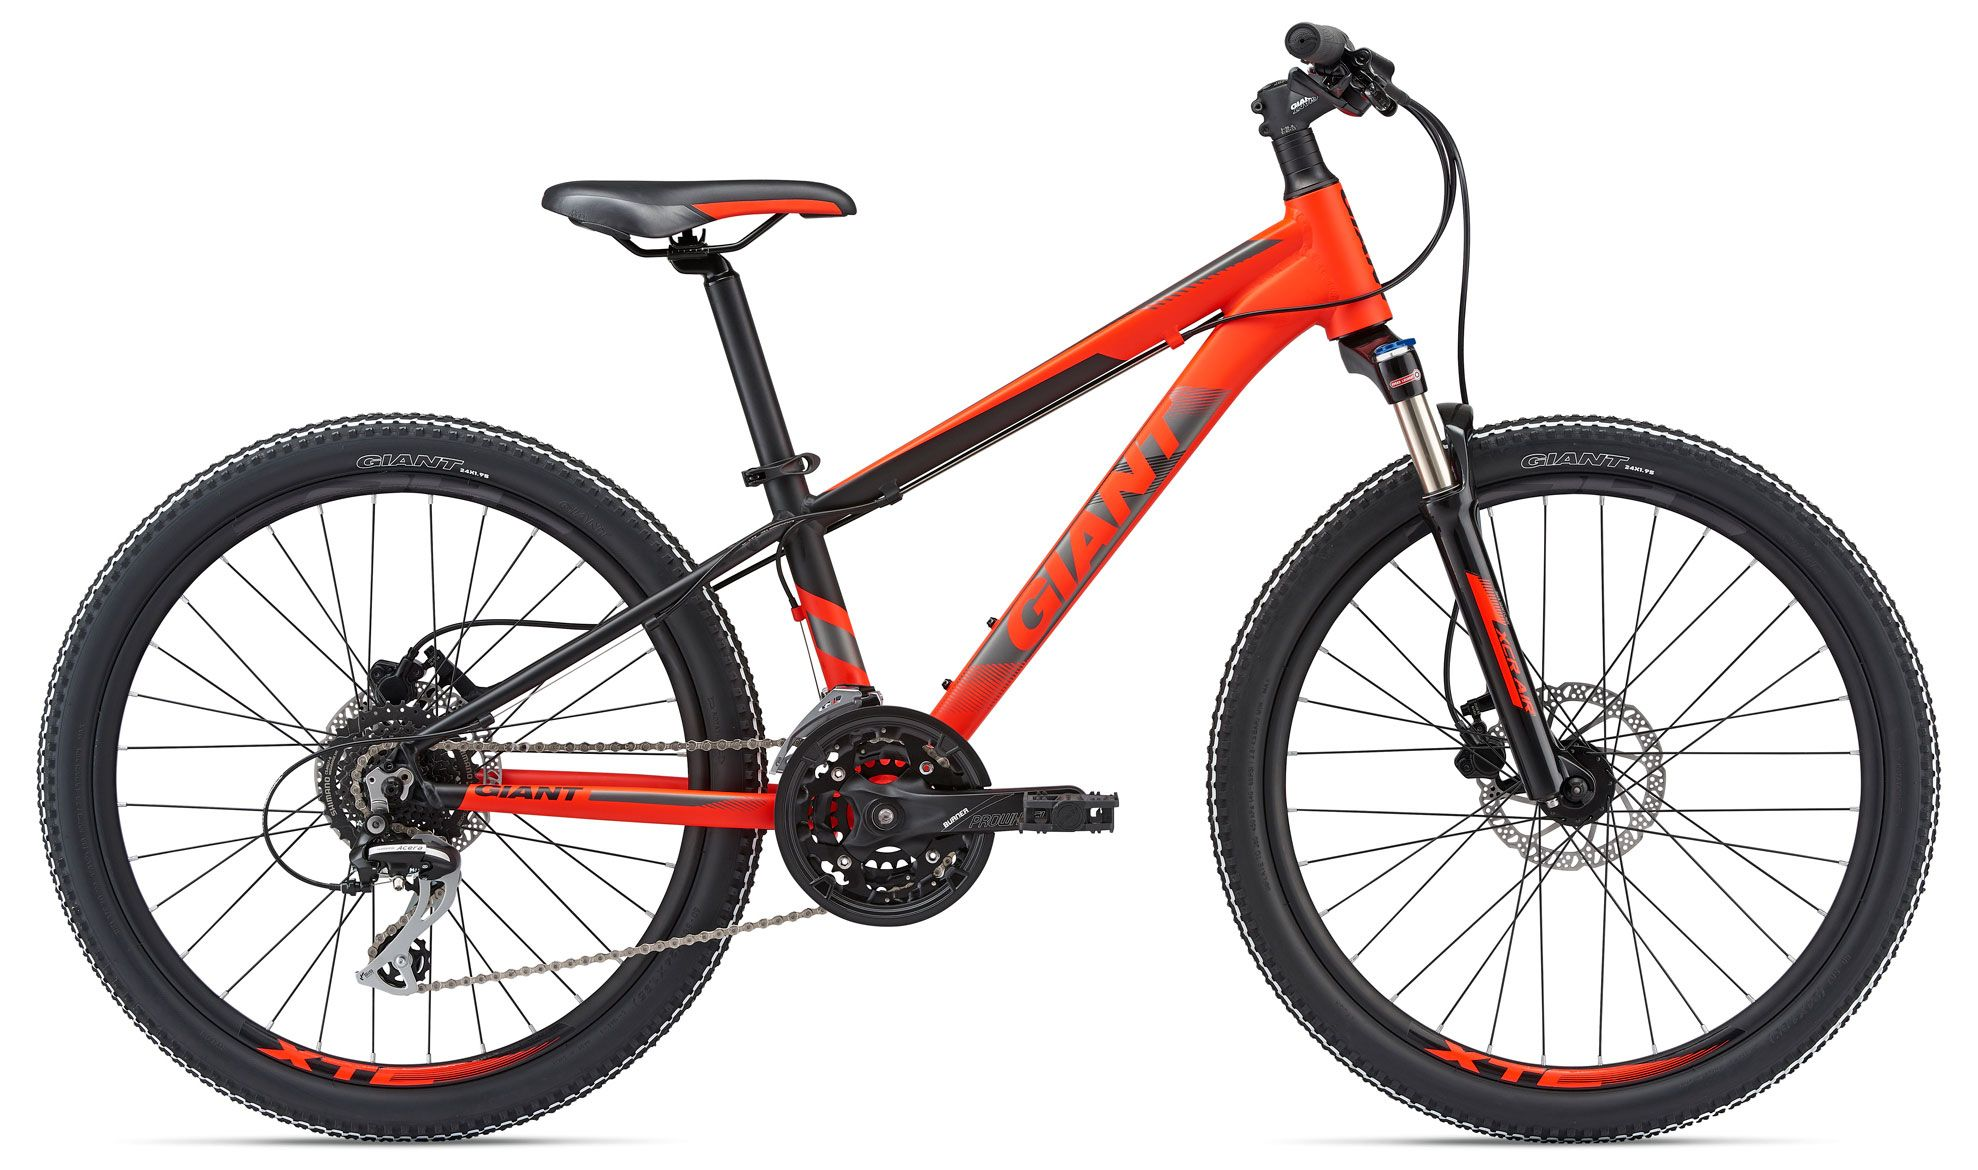 Велосипед Giant XtC SL Jr 24 2018 велосипед giant xtc advanced 27 5 2 2016